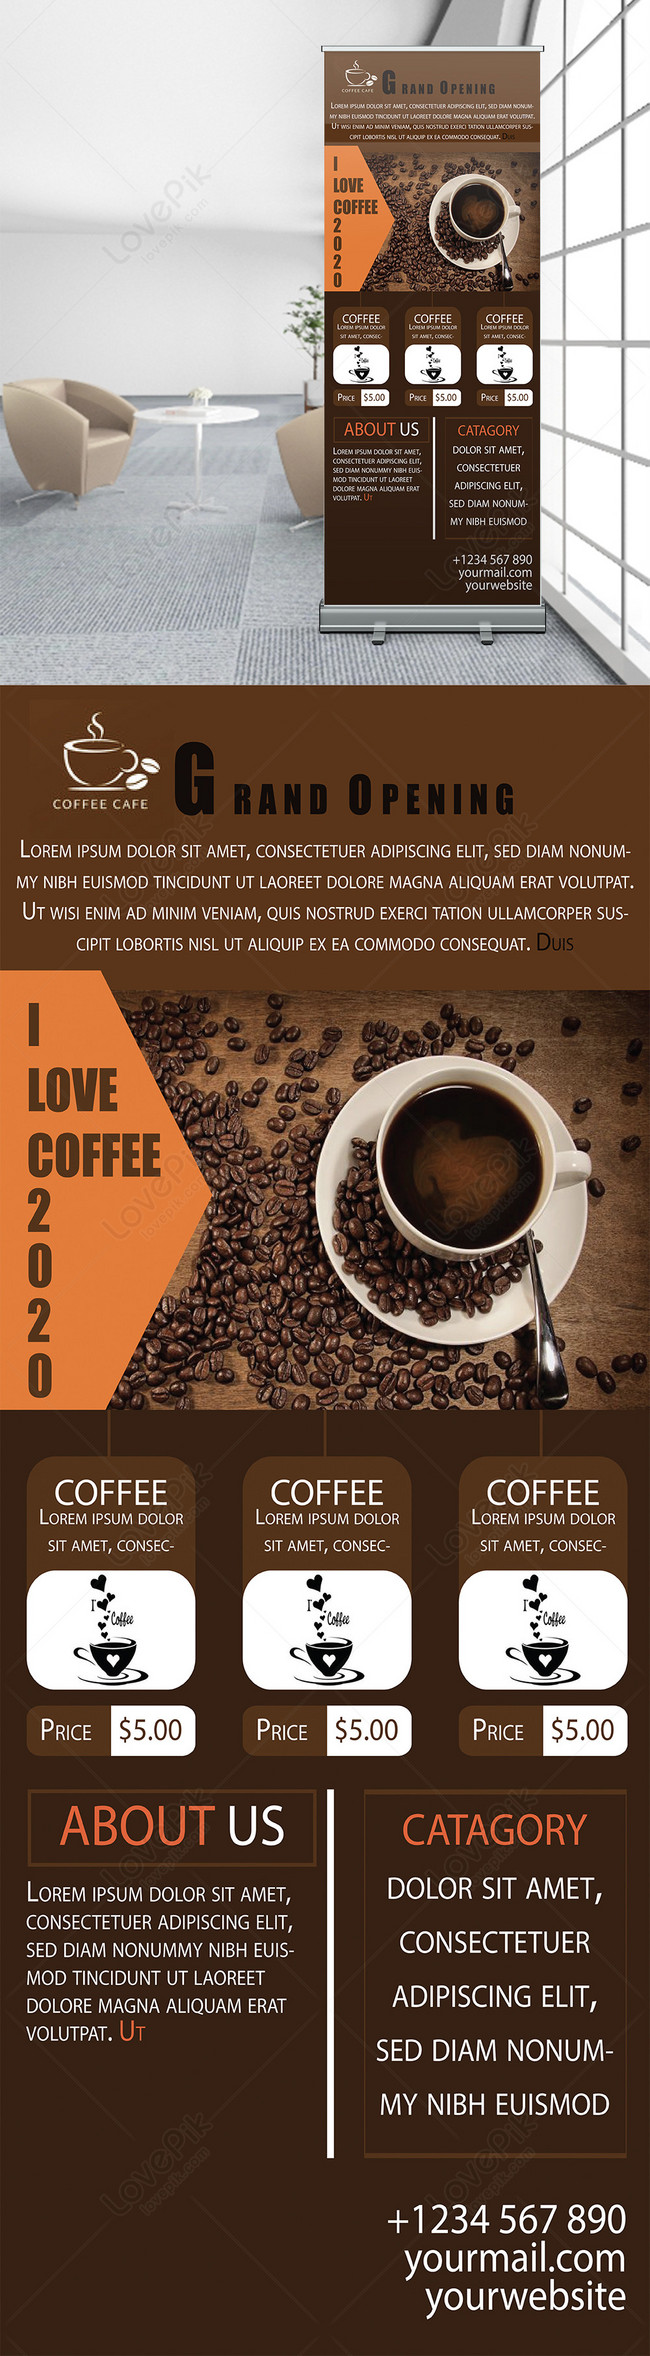 Coffee Shop Roll Up Banner Template Image Picture Free Download 450003691 Lovepik Com